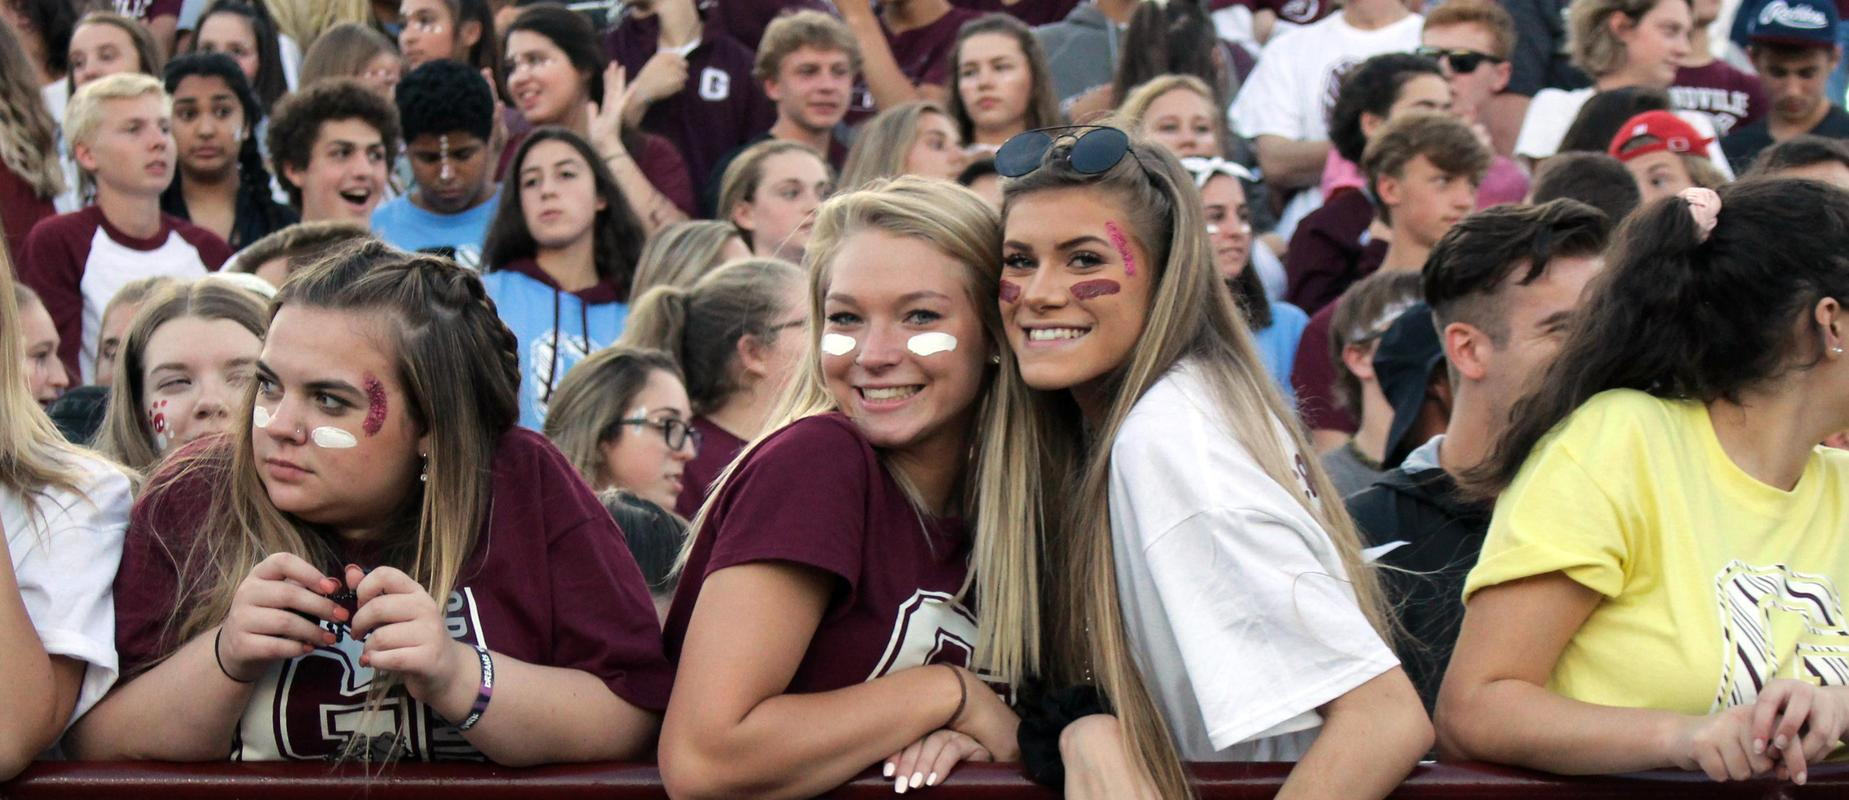 crowd wears school colors at homecoming football game